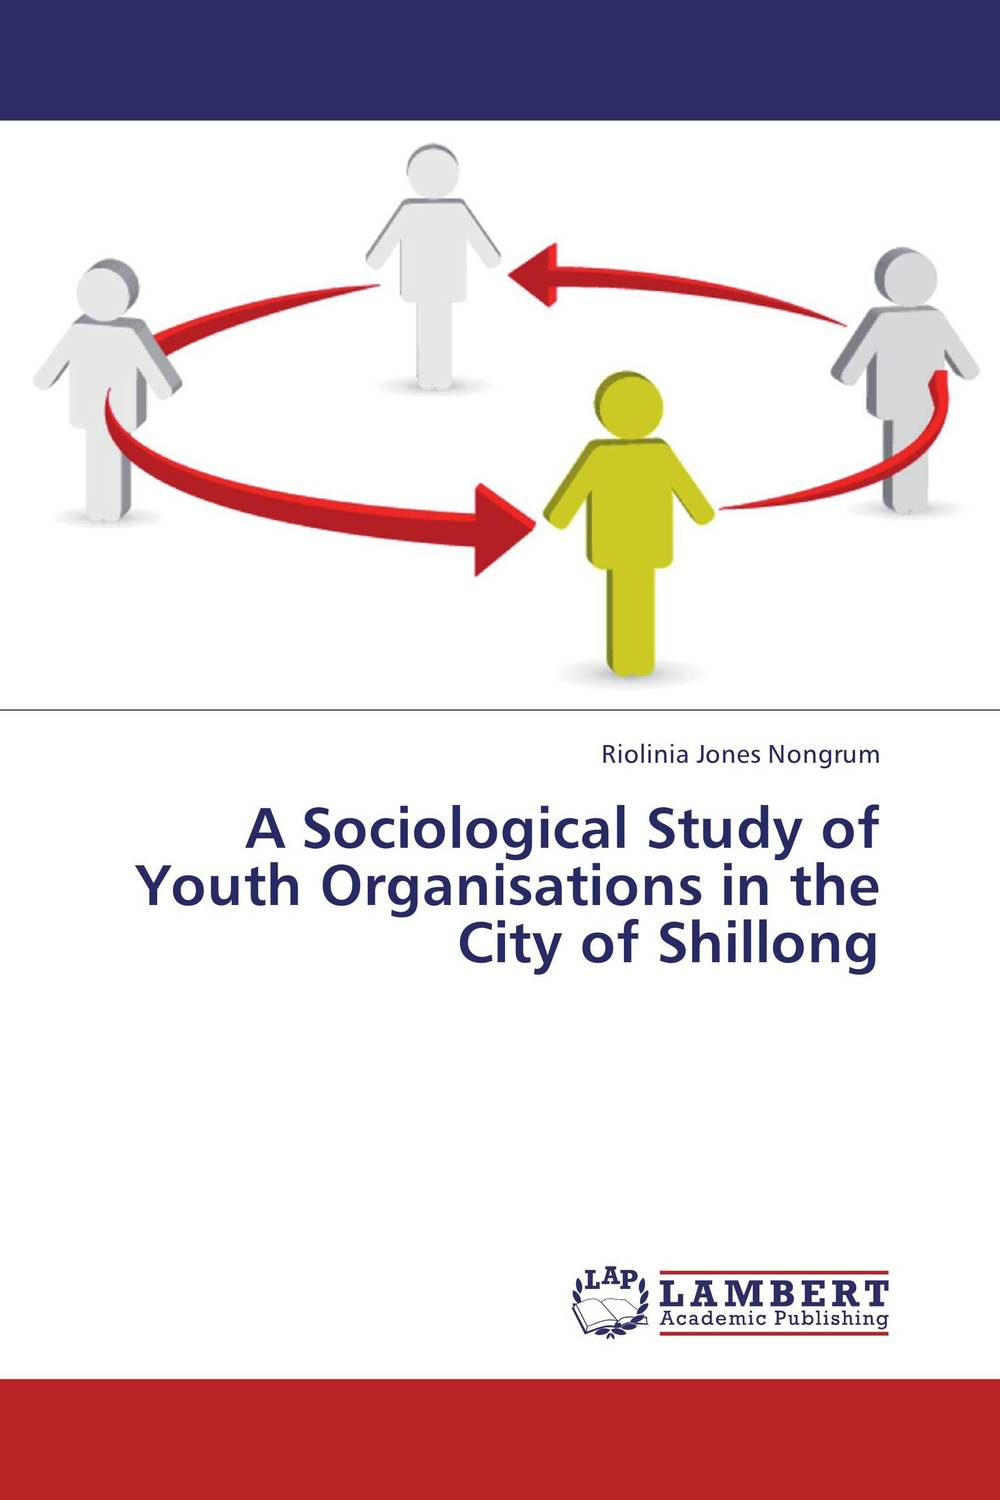 A Sociological Study of Youth Organisations in the City of Shillong a study of the religio political thought of abdurrahman wahid